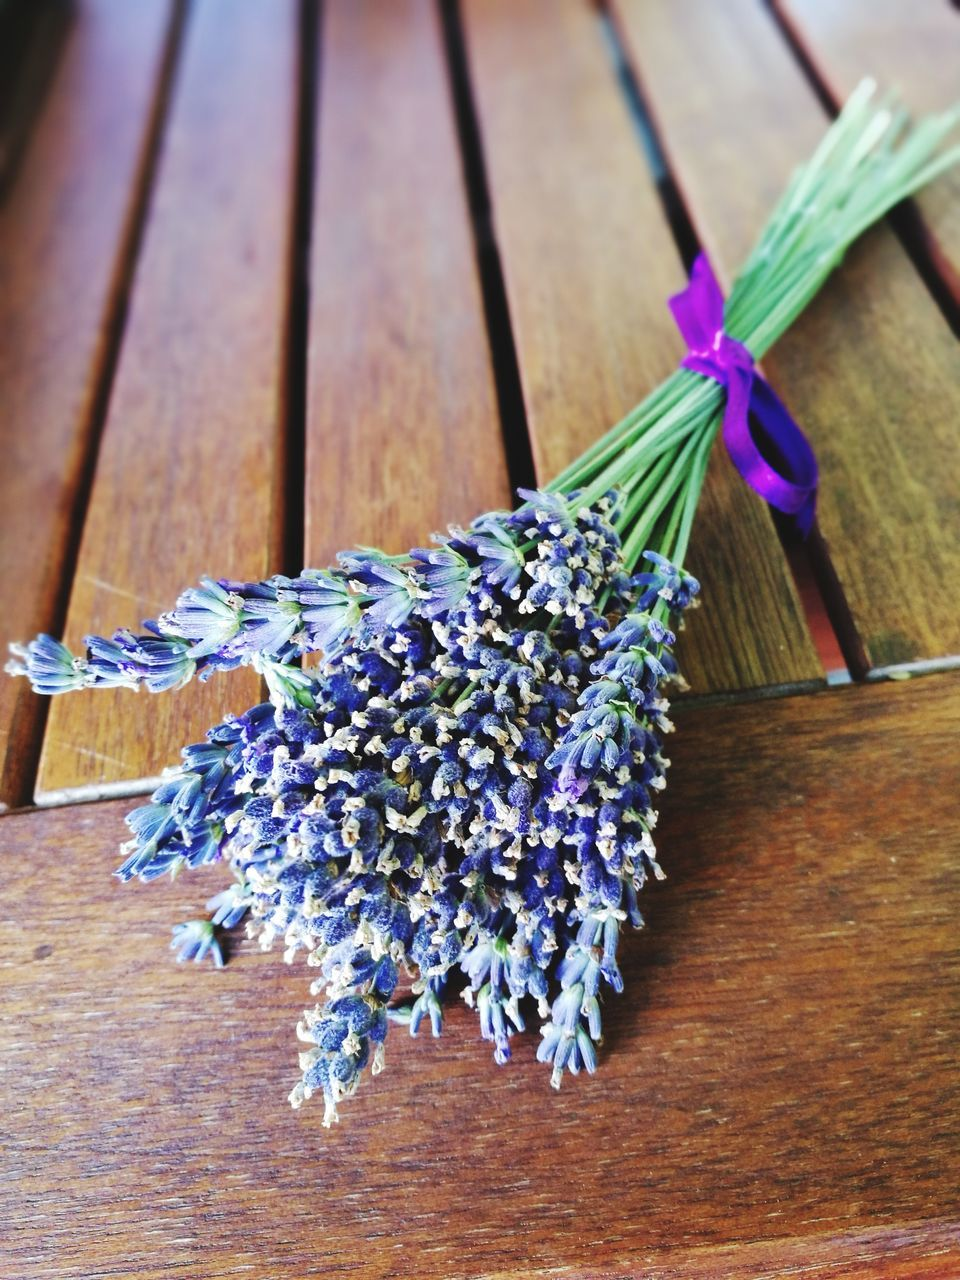 flower, freshness, purple, table, wood - material, fragility, lavender, close-up, no people, nature, petal, high angle view, indoors, tied up, flower head, scented, beauty in nature, hyacinth, day